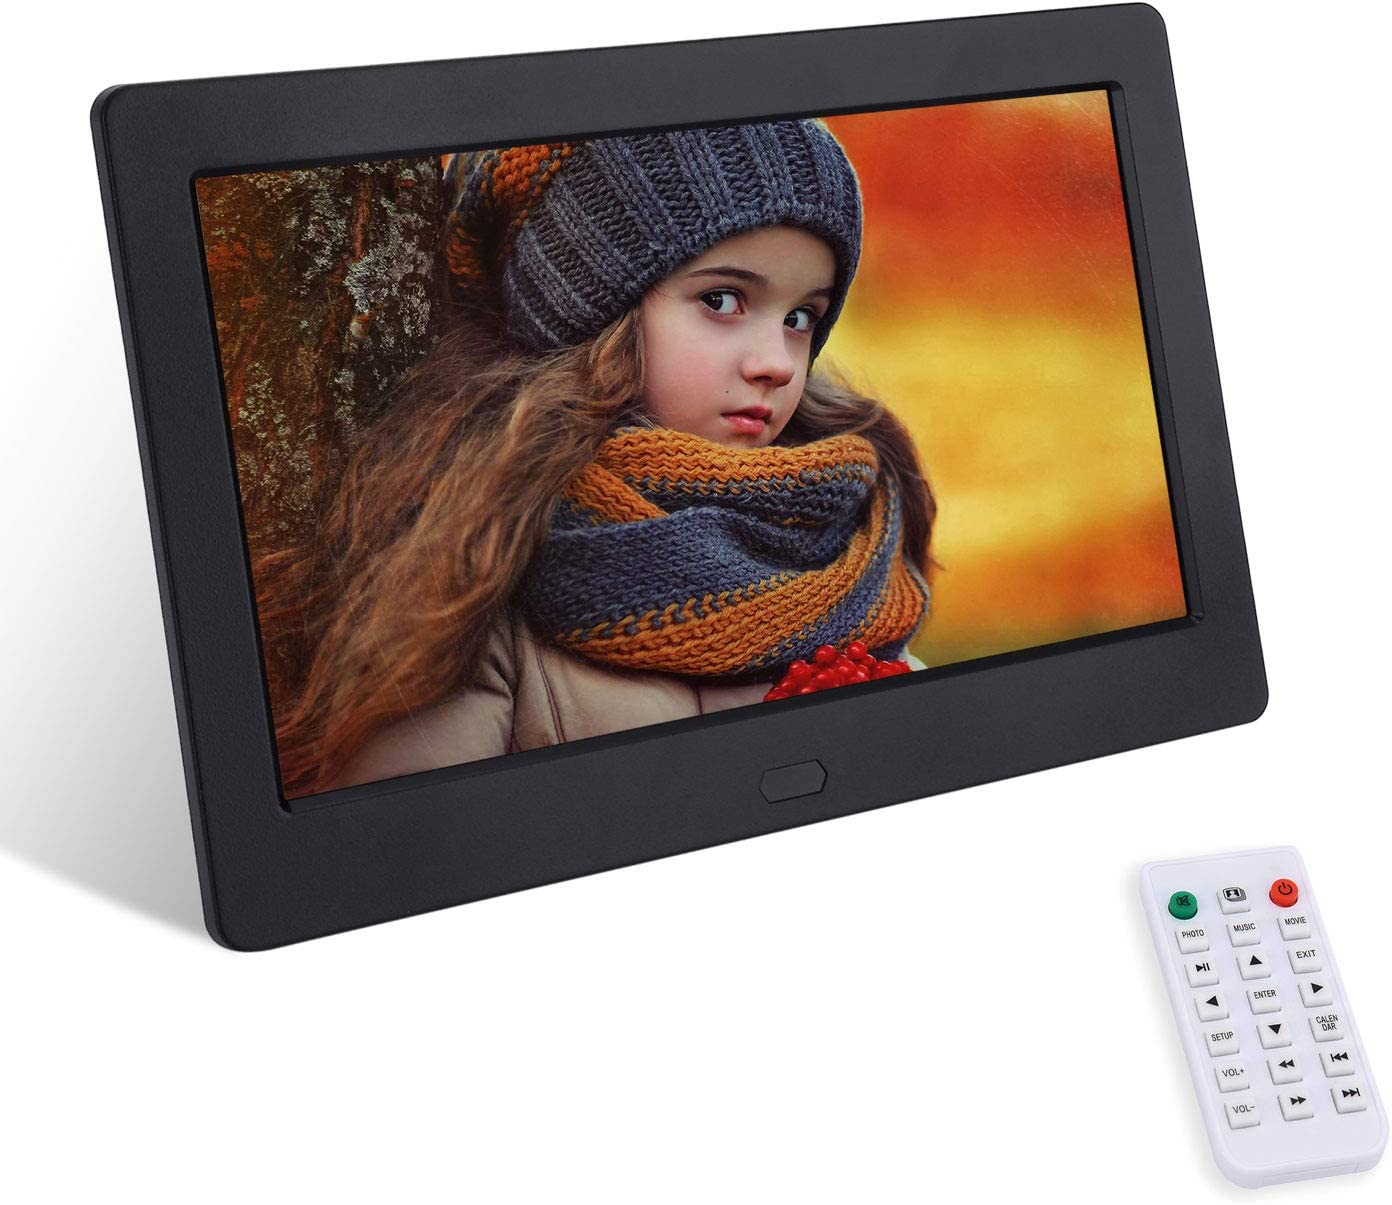 7 Inch Digital Picture Frame with 1920x1080 IPS High Resolution Display Screen,FamBrow Electronic Photo Frames with 1080P Video Music, Photo, Calendar, Slideshow, RC,Support USB & SD Card(Black)